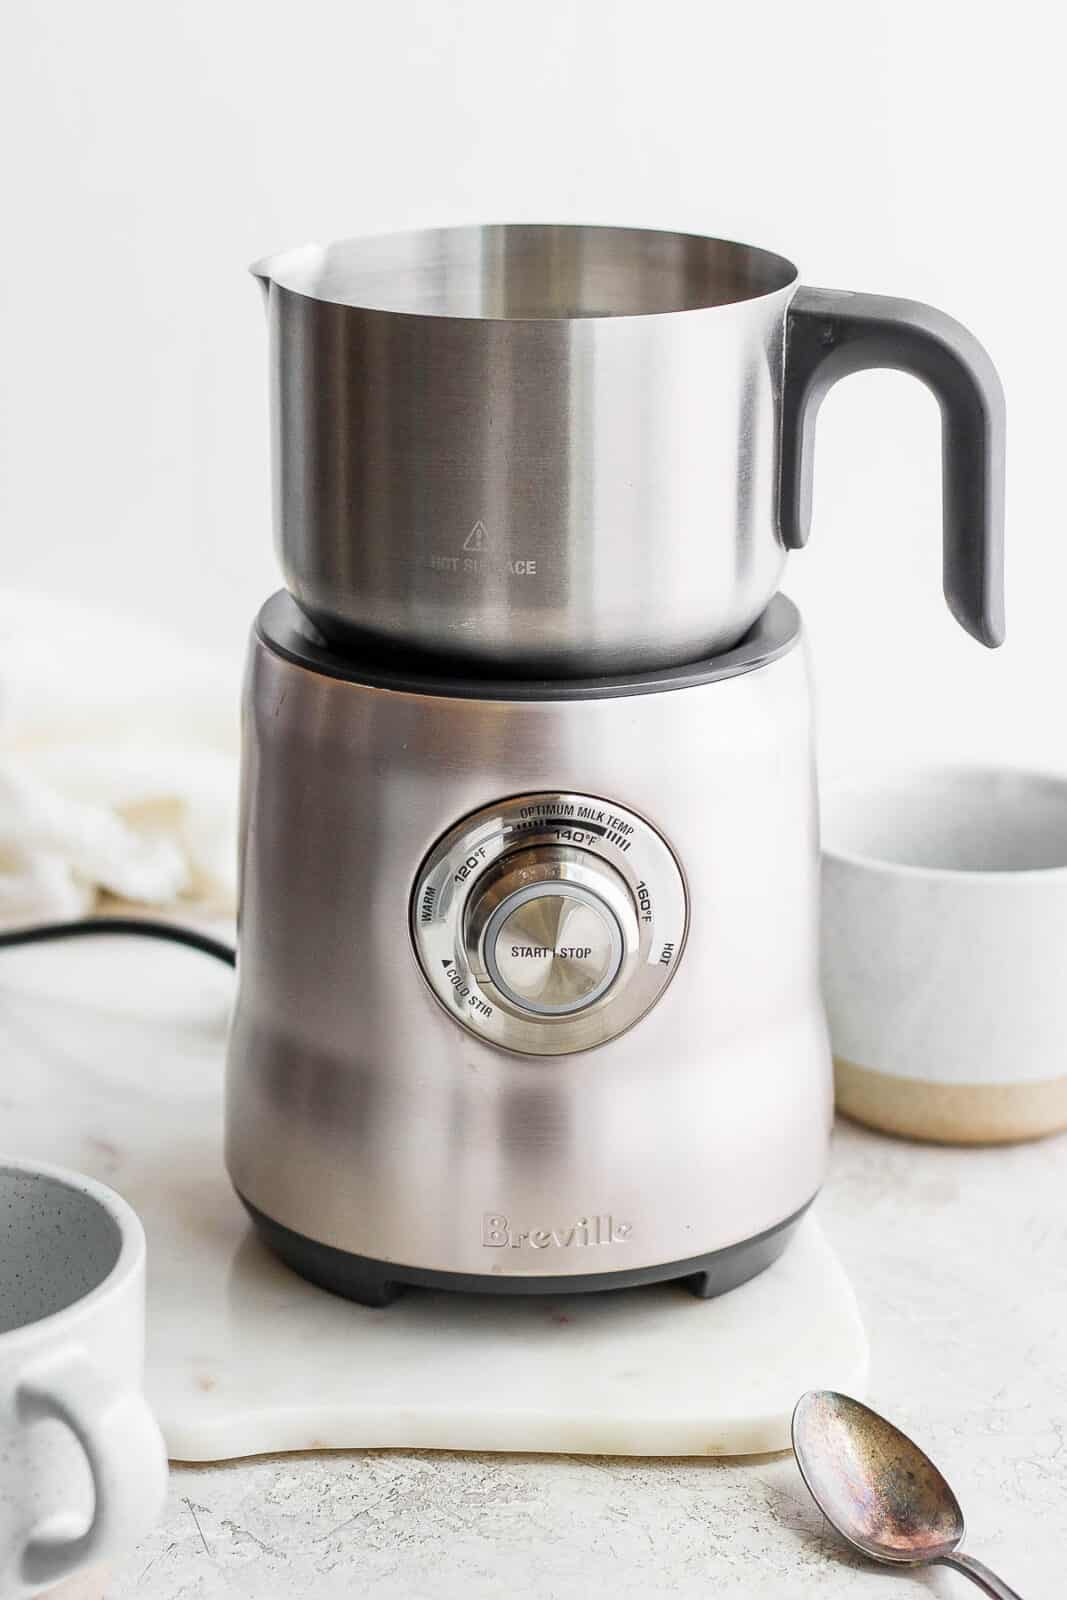 A Breville milk frother.